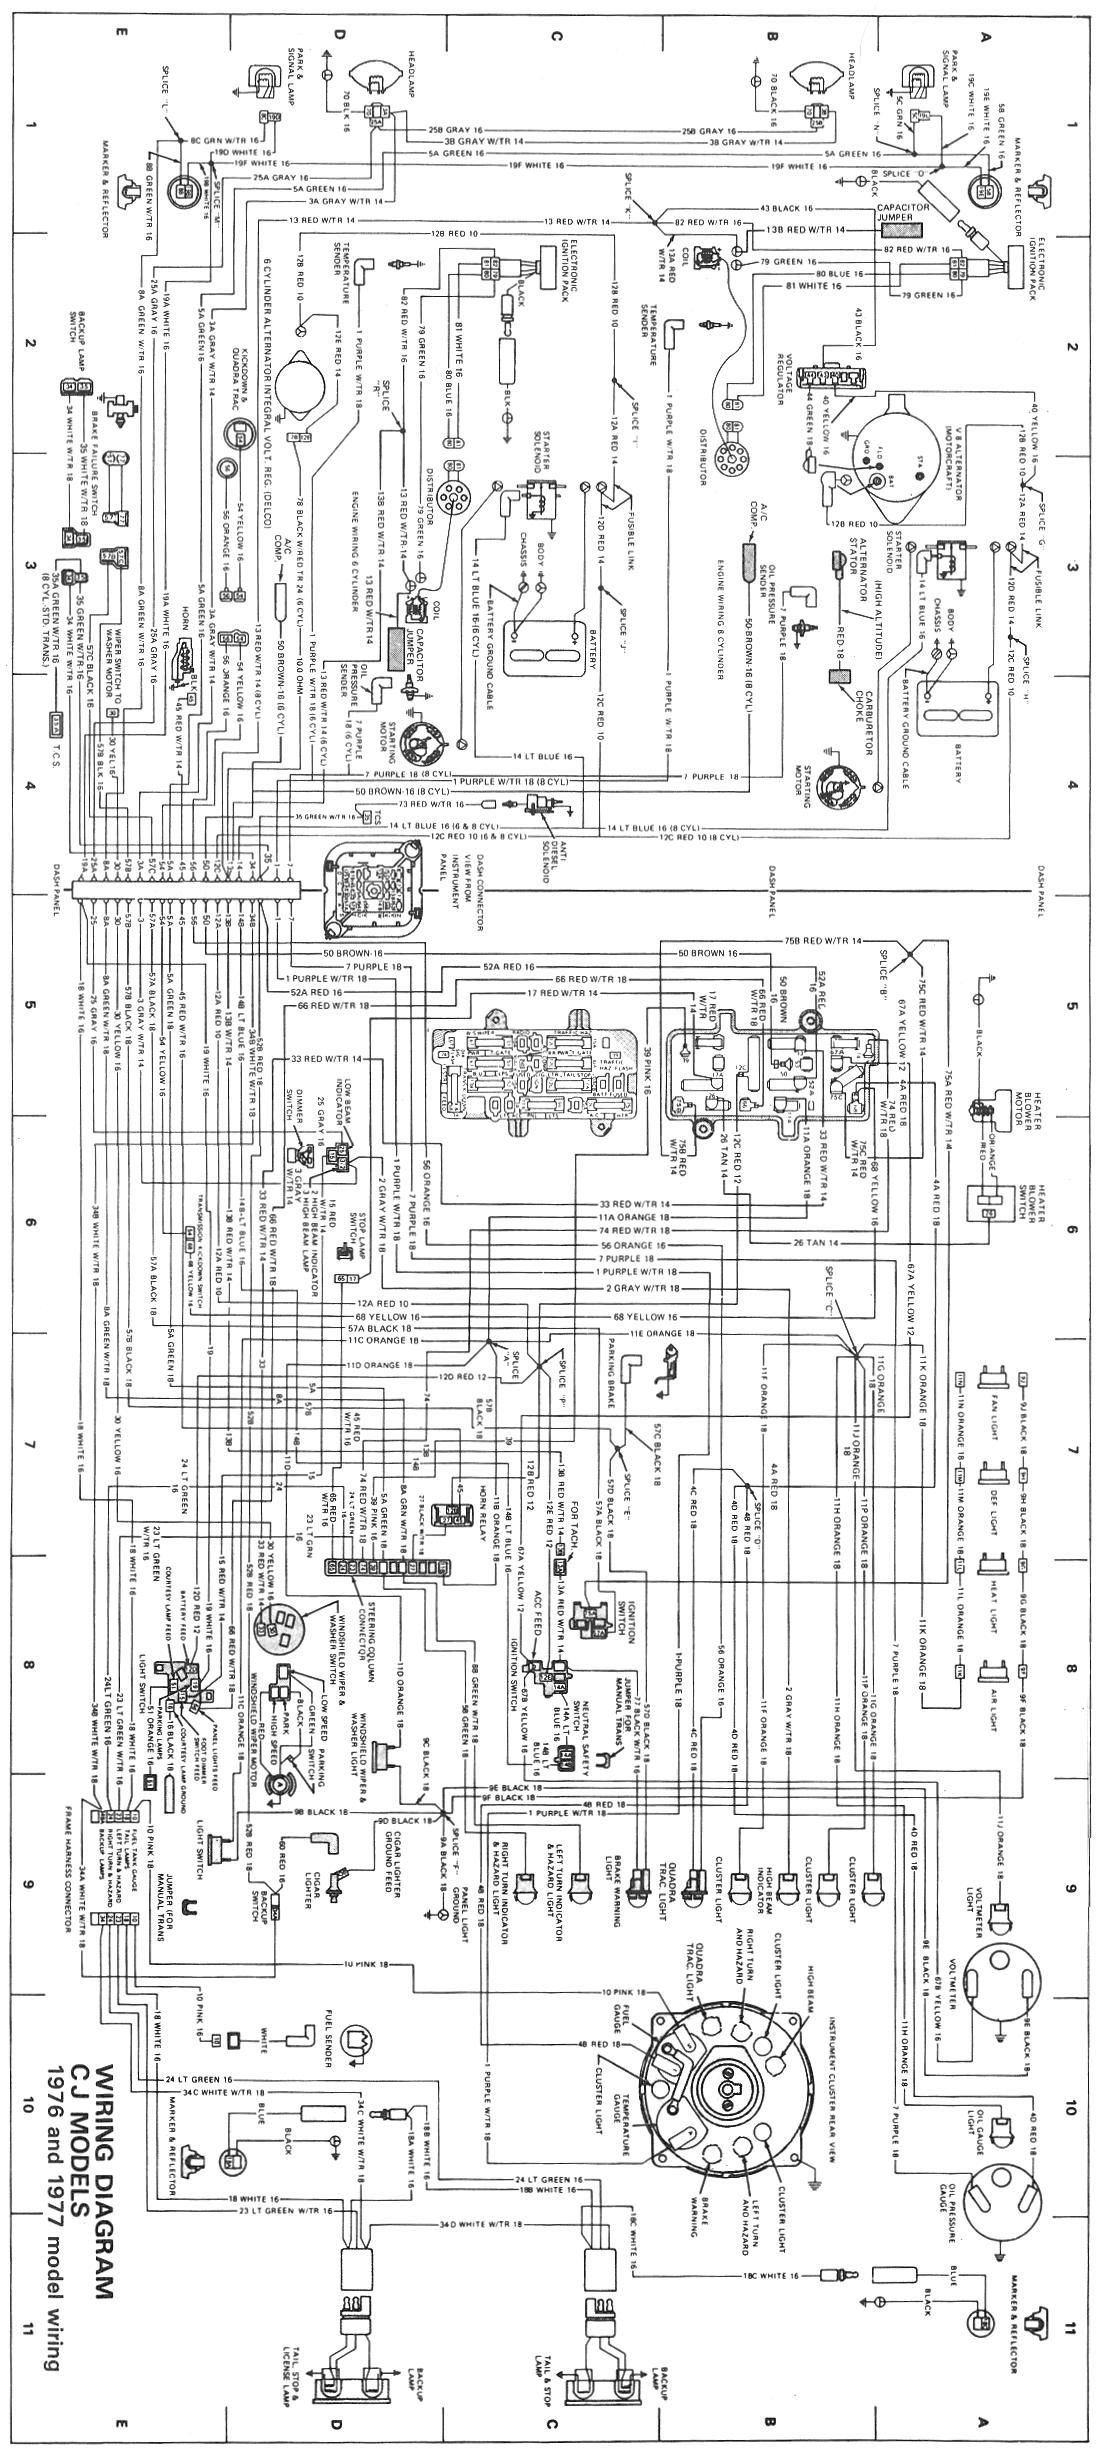 cj wiring diagram 1976 1977 jpg 1 100 2 459 pixels 1976 jeep cj5 rh cz pinterest com 1994 Jeep Cherokee Fuse Diagram 1999 Jeep Cherokee Fuse Diagram